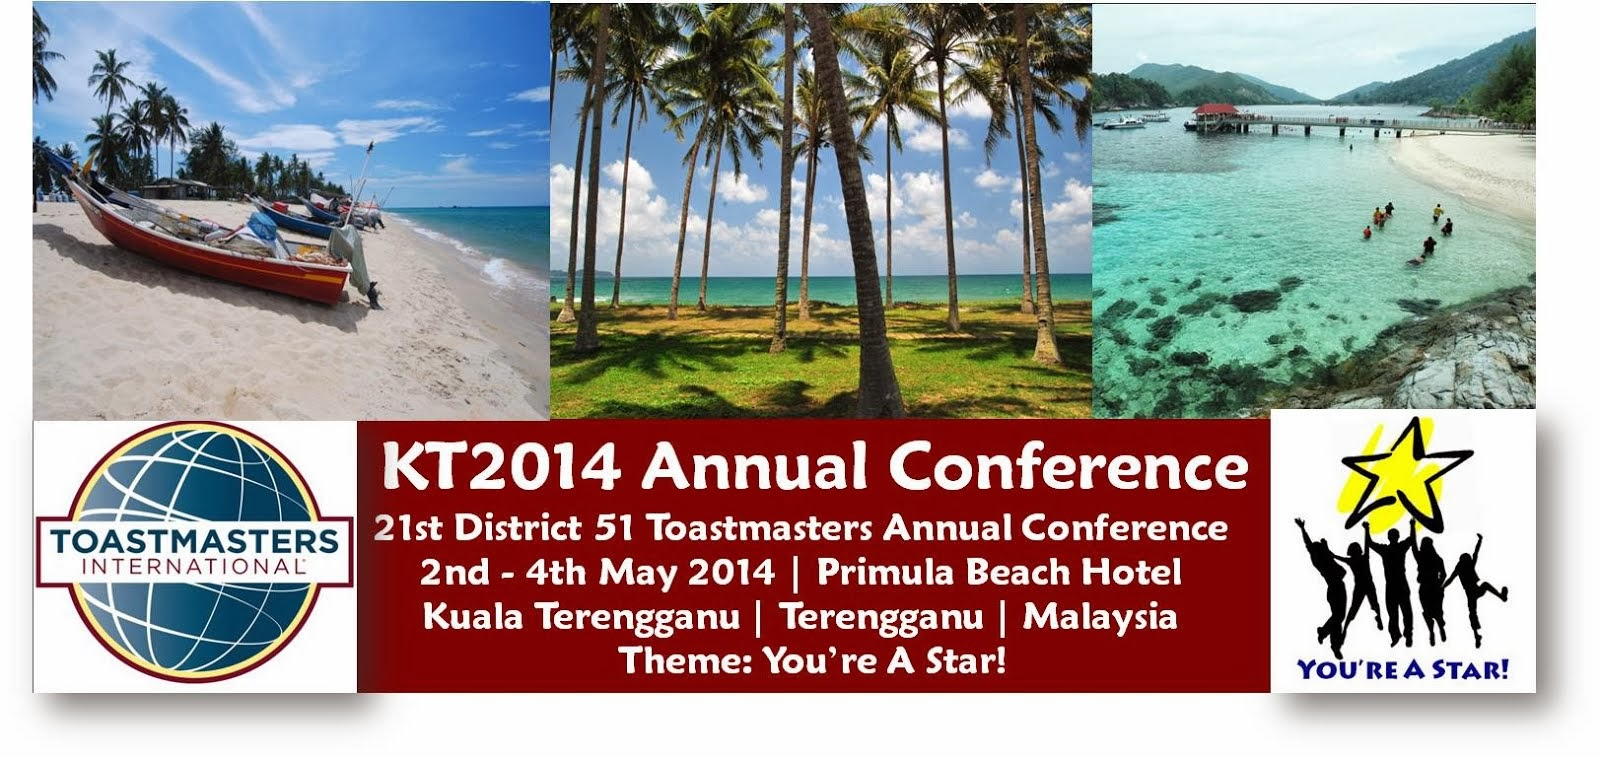 KT2014 Annual Convention